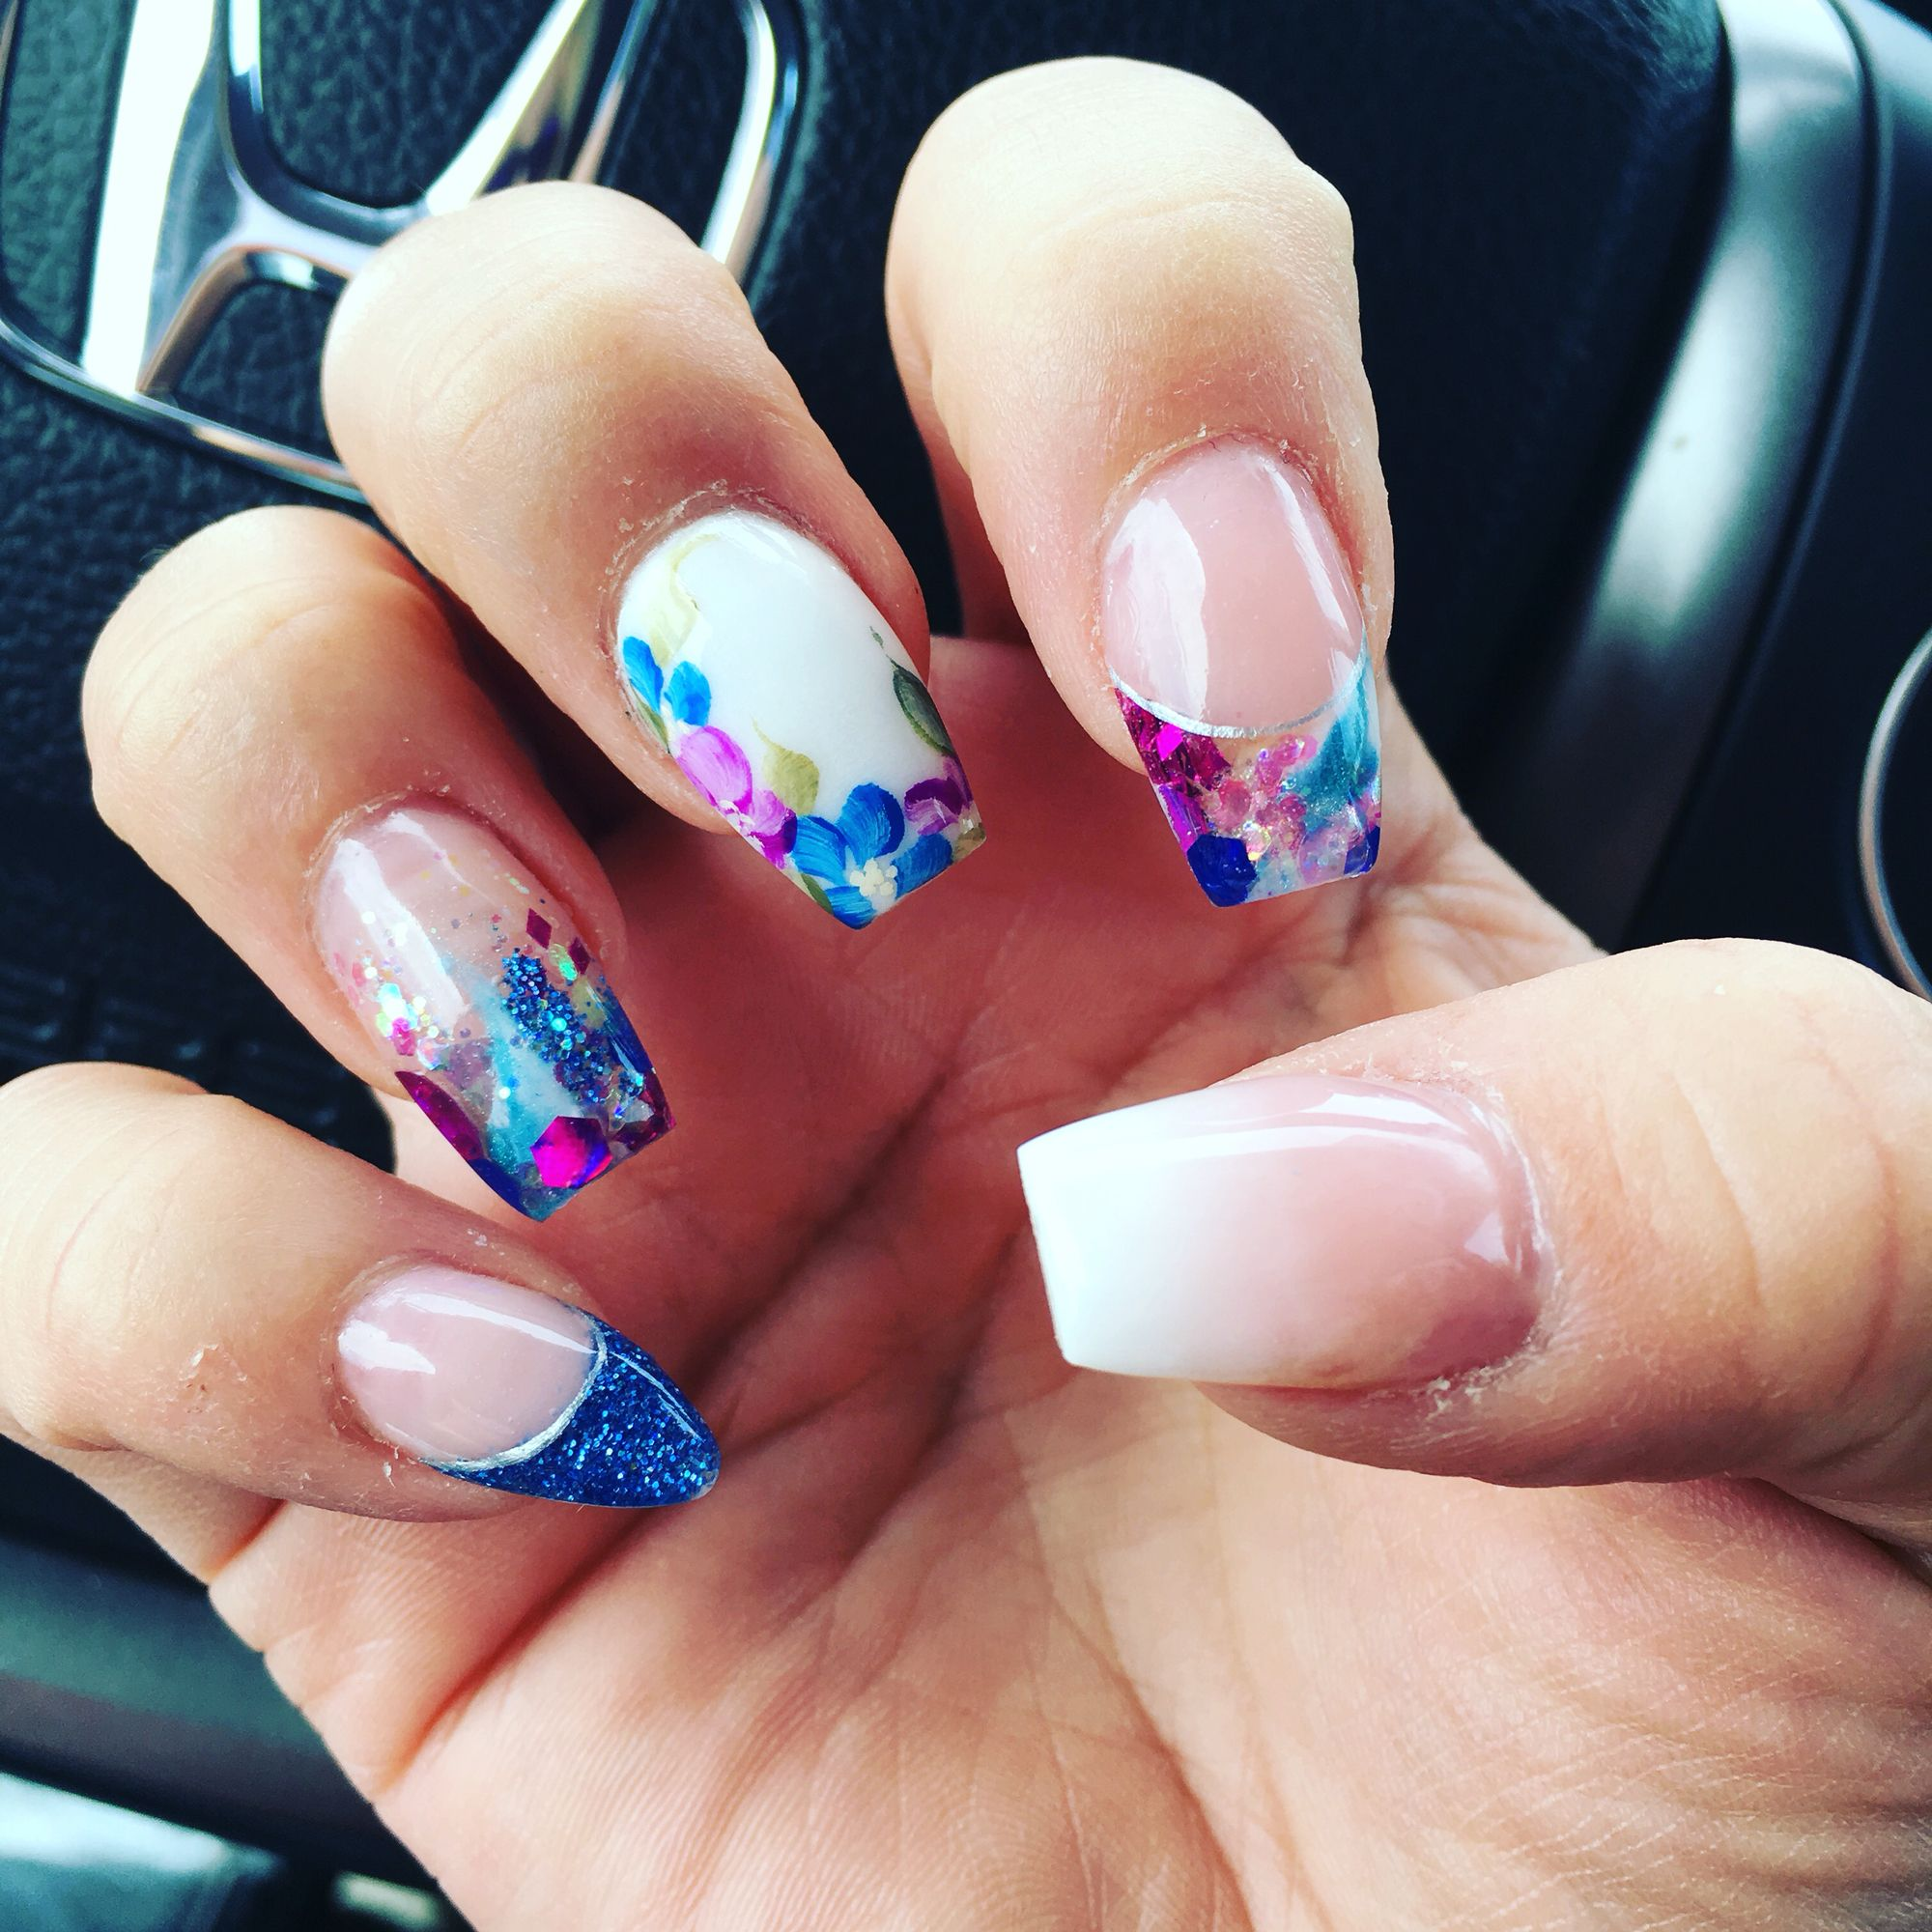 Coffin Free Hand Ombre Thumb Stiletto Pinky Nails By Bela Nails Pinky Thumb